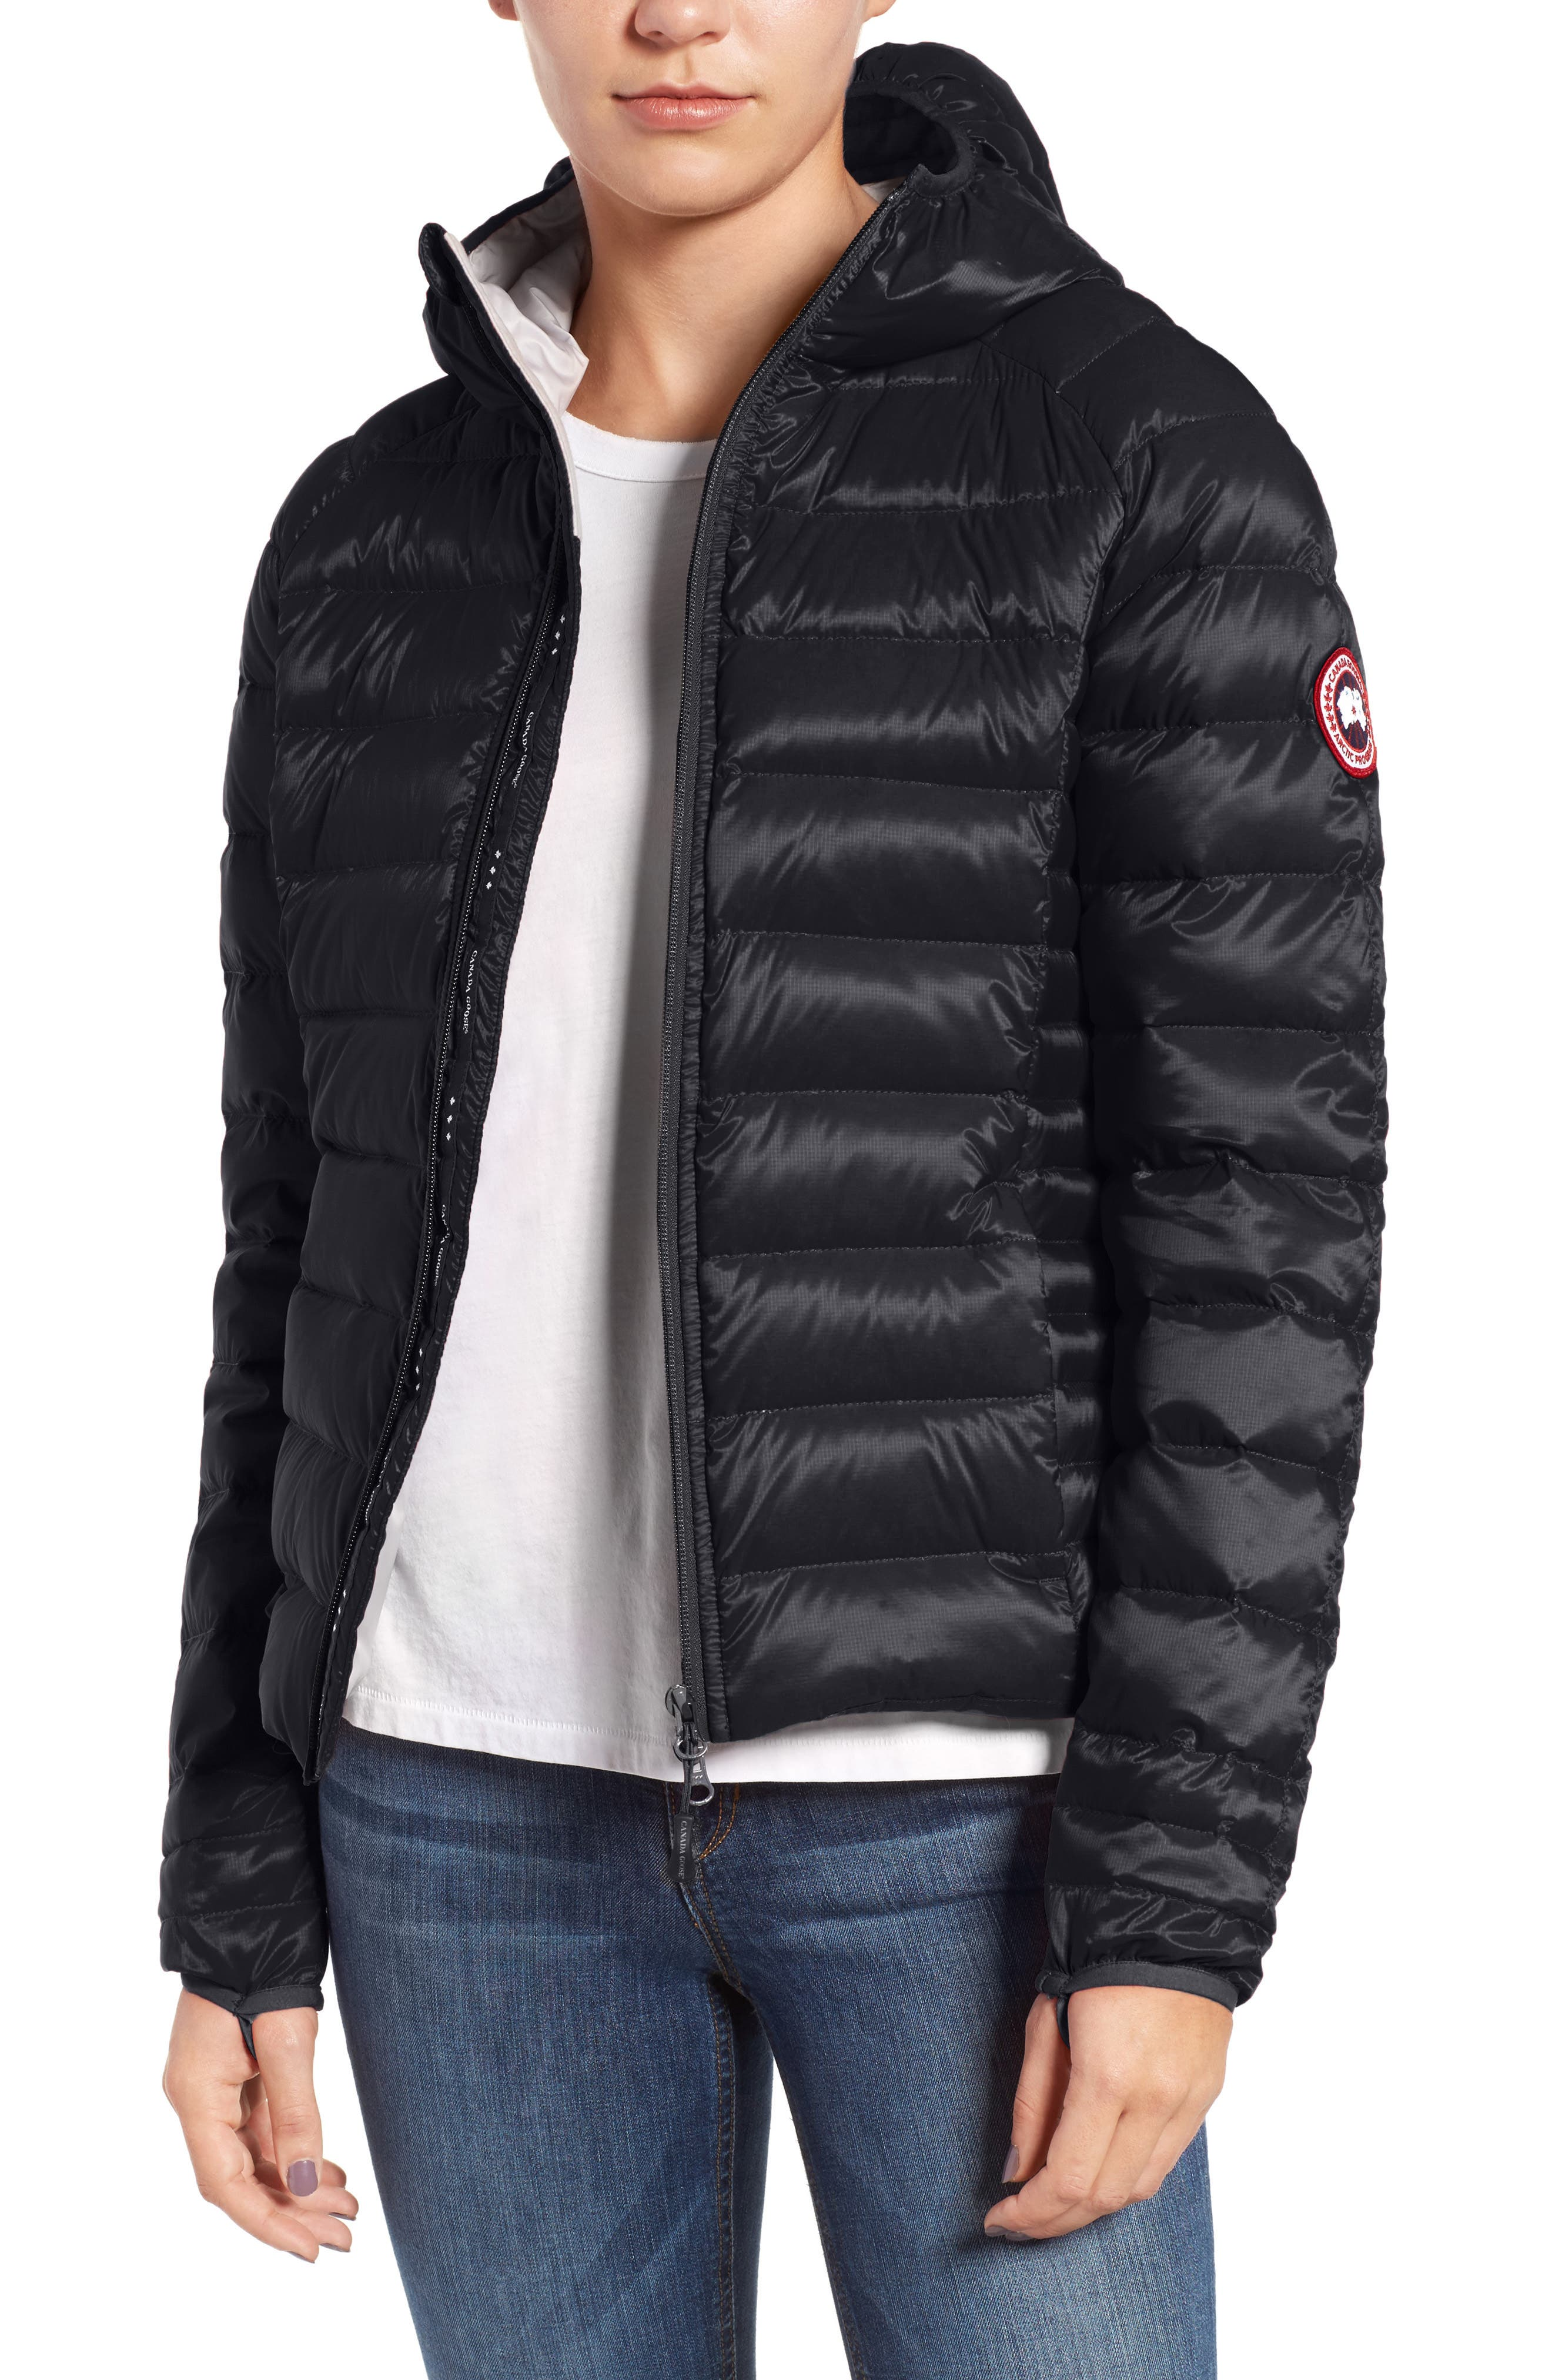 'Brookvale' Packable Hooded Quilted Down Jacket,                             Main thumbnail 1, color,                             Black/ Graphite